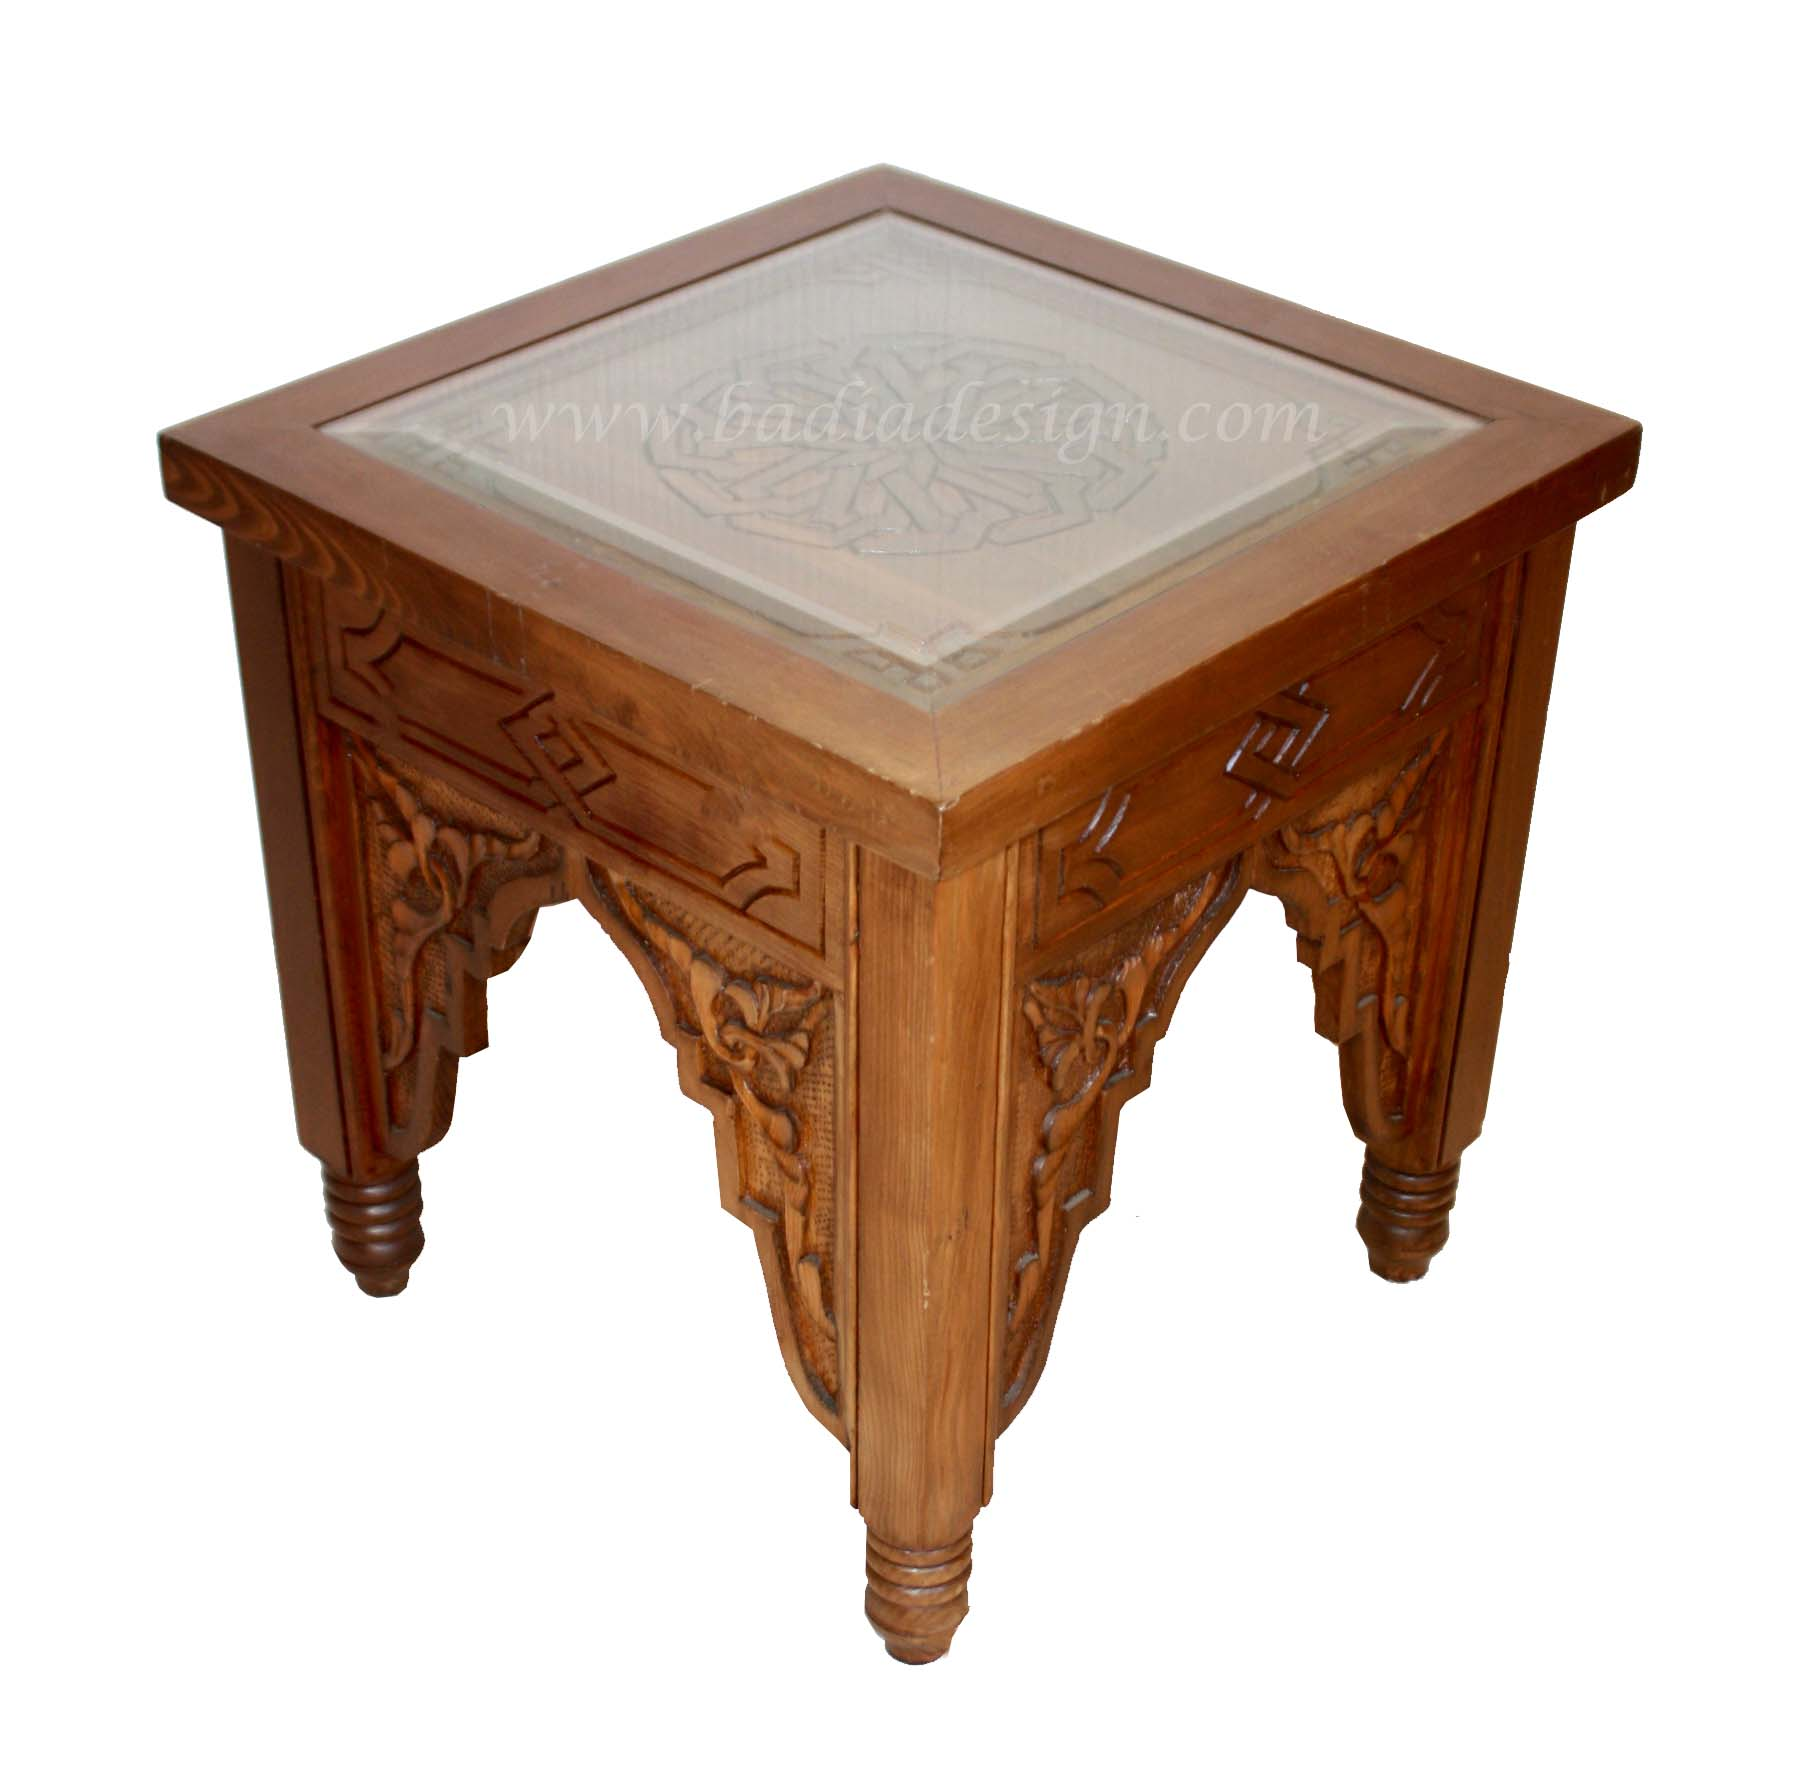 Moroccan Carved Wood Side Table